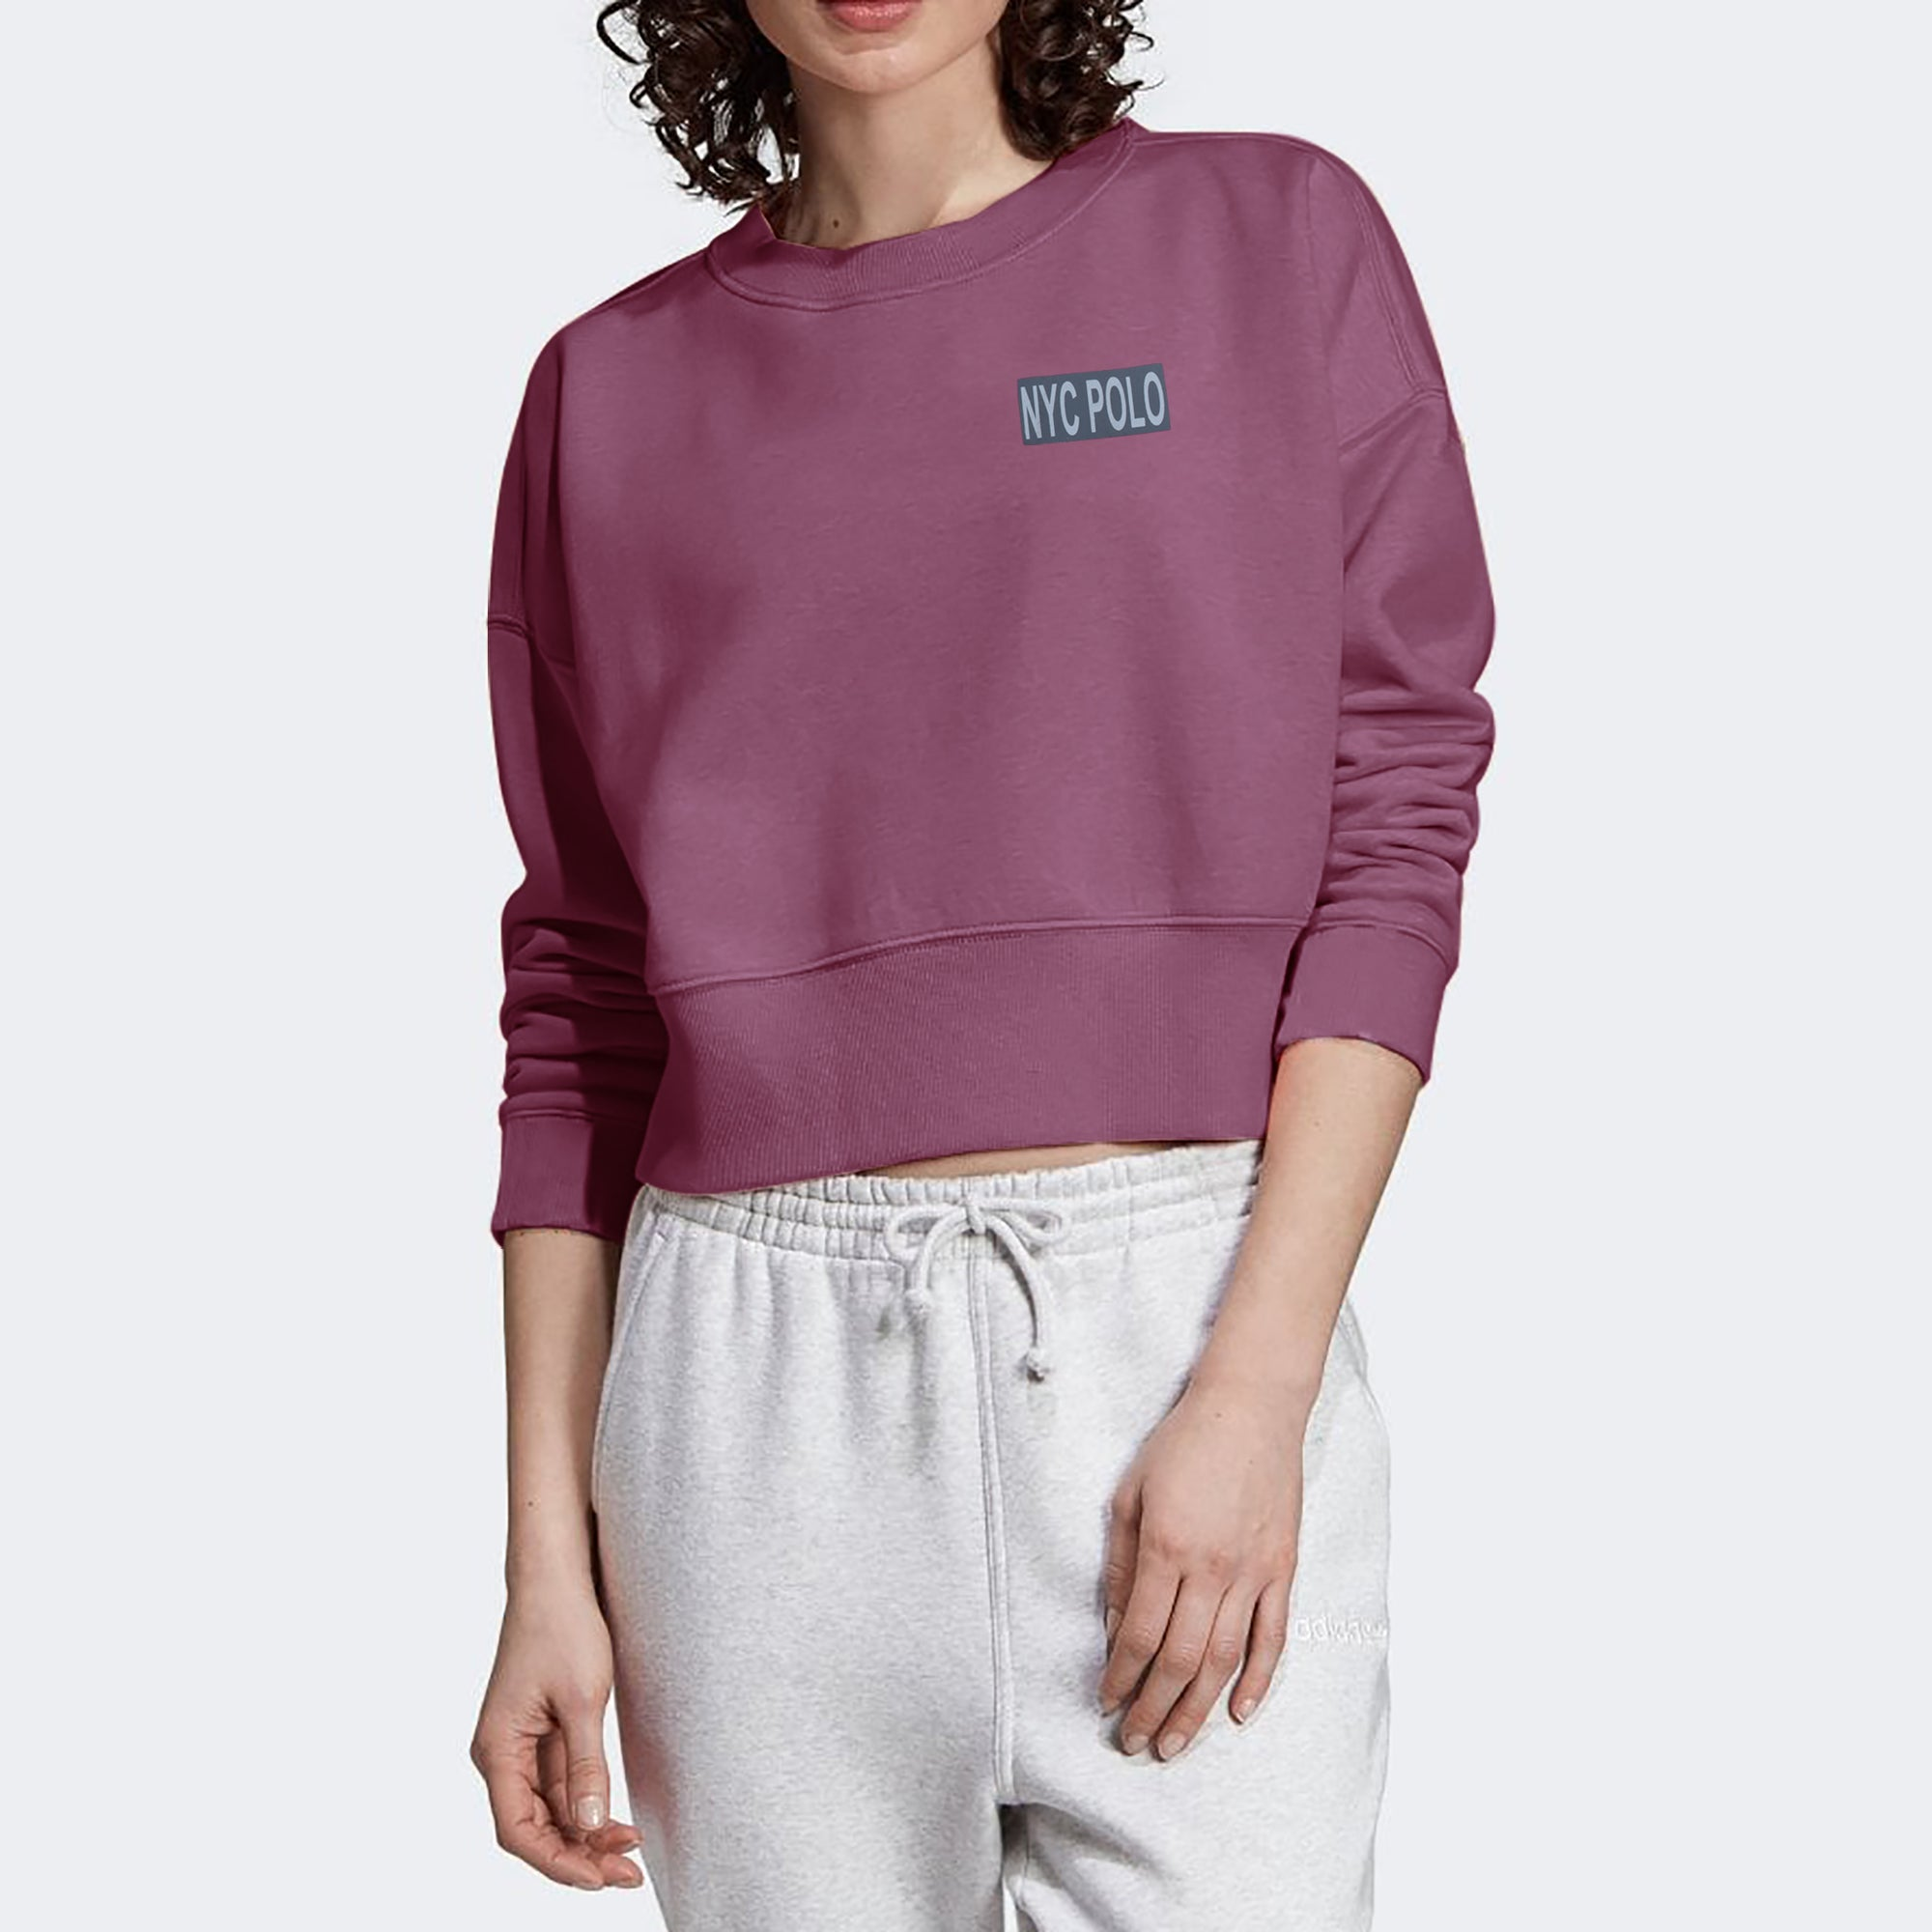 Nyc Polo Fleece Crop Sweatshirt For Women-Dark Magenta-SP1133